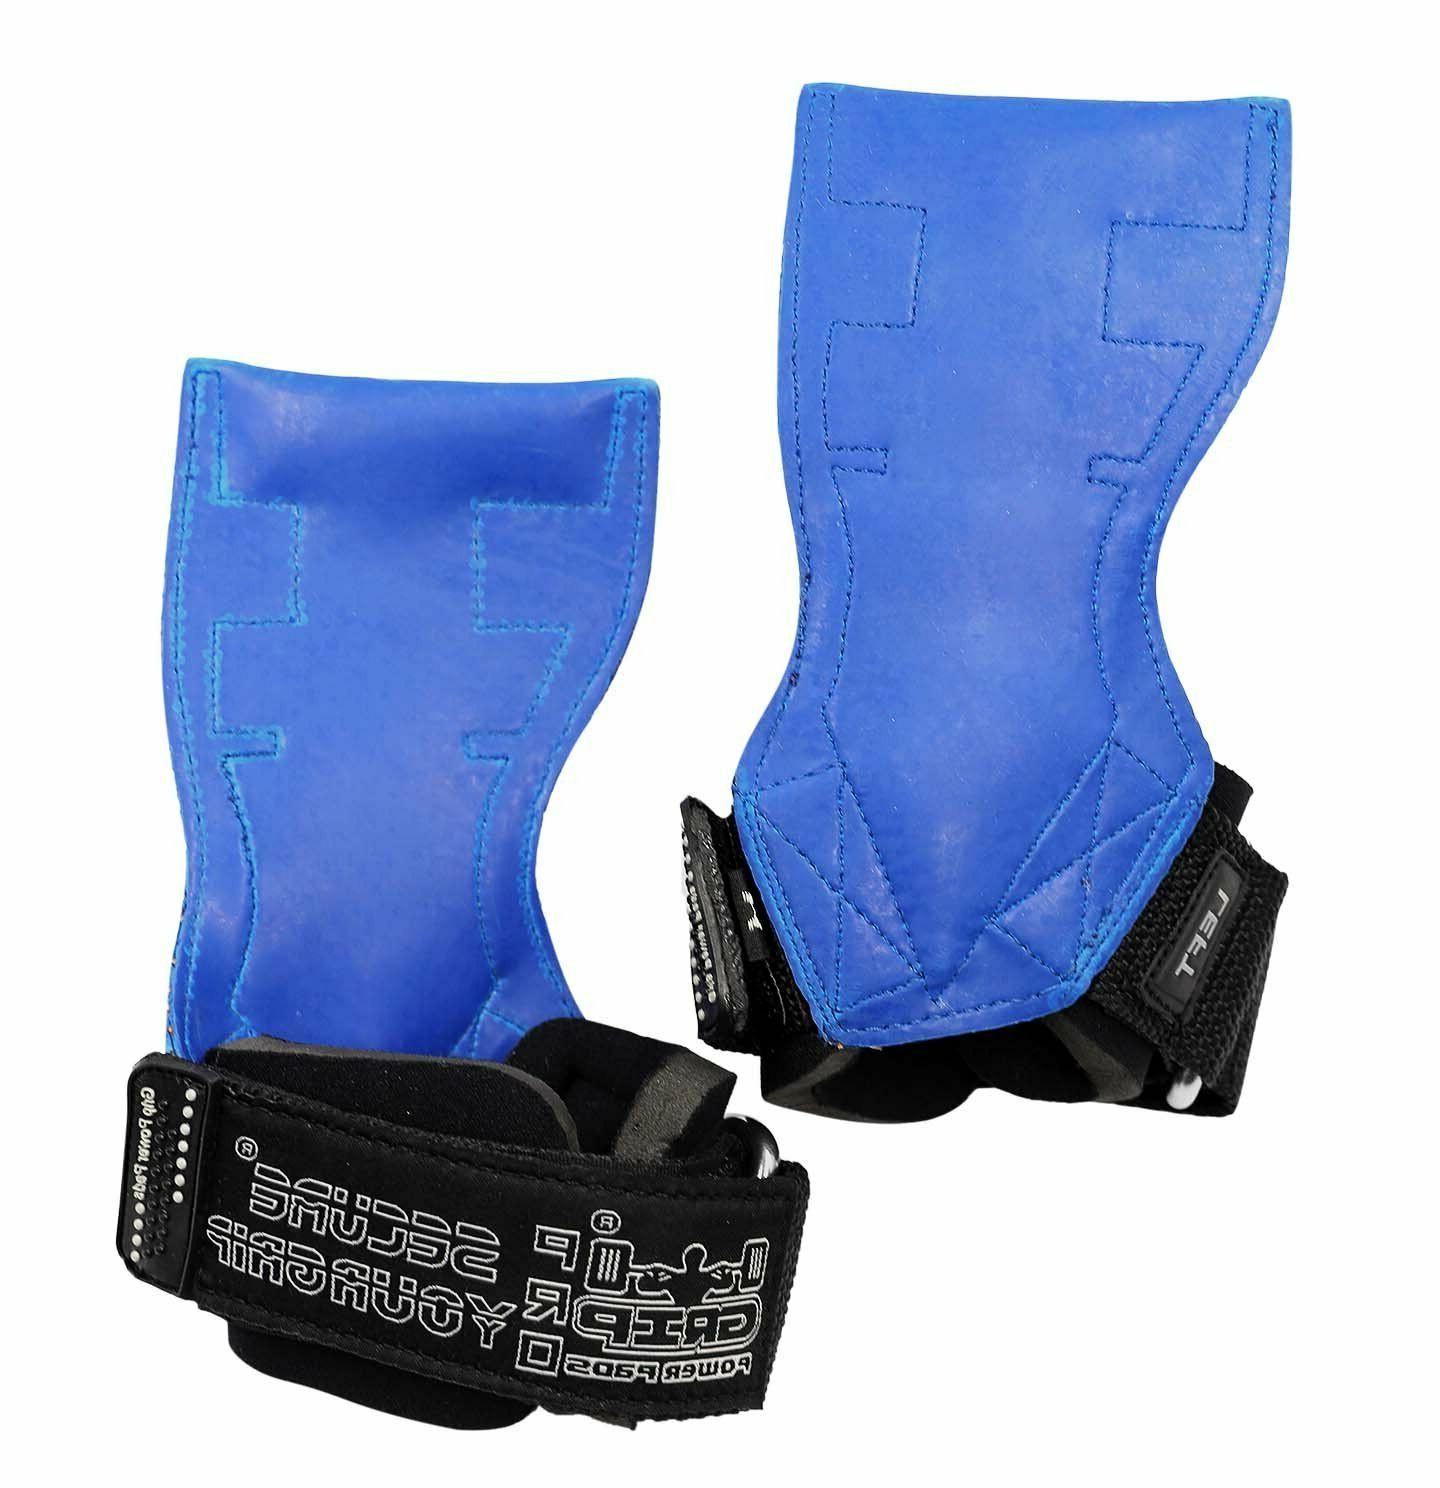 Lifting Weight Gloves Heavy Duty Straps to Hook